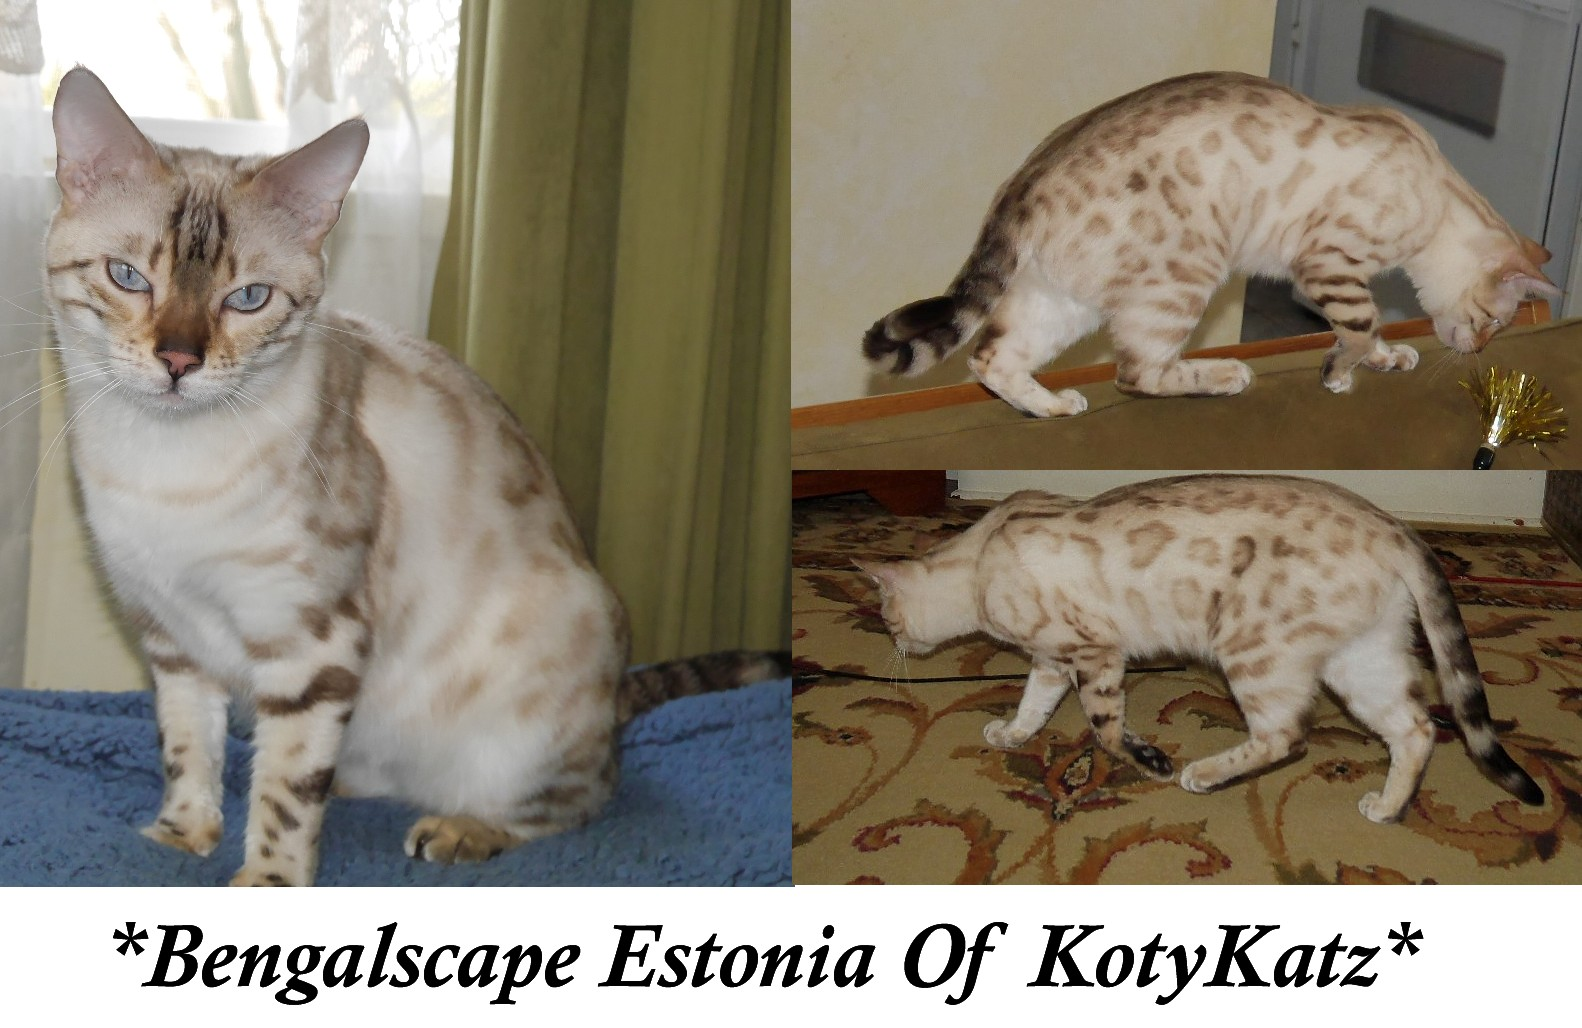 Bengalscape Estonia Of KotyKatz